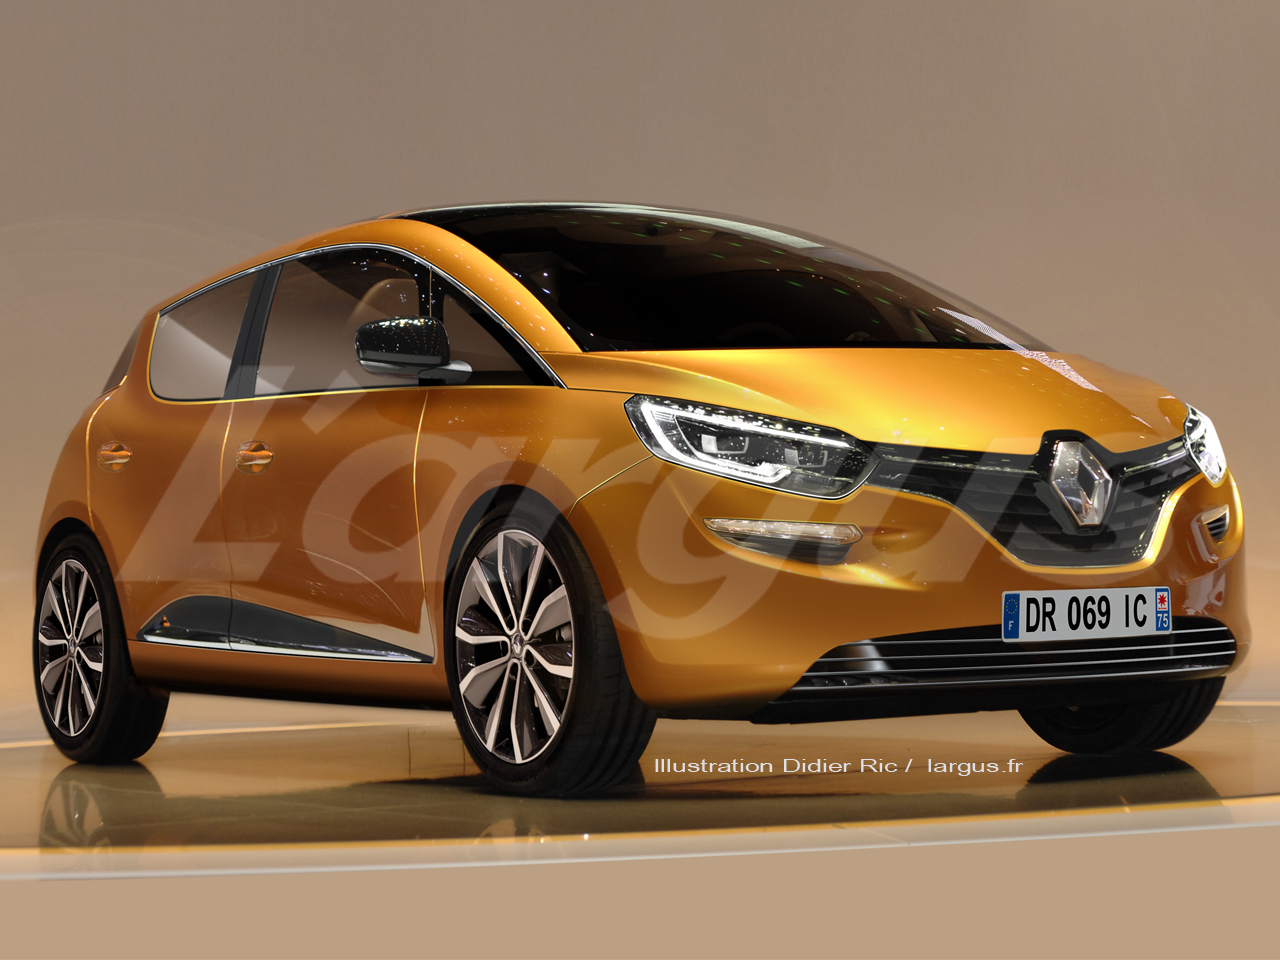 The new 2016 Renault Scenic is here: have they reinvented the MPV ...